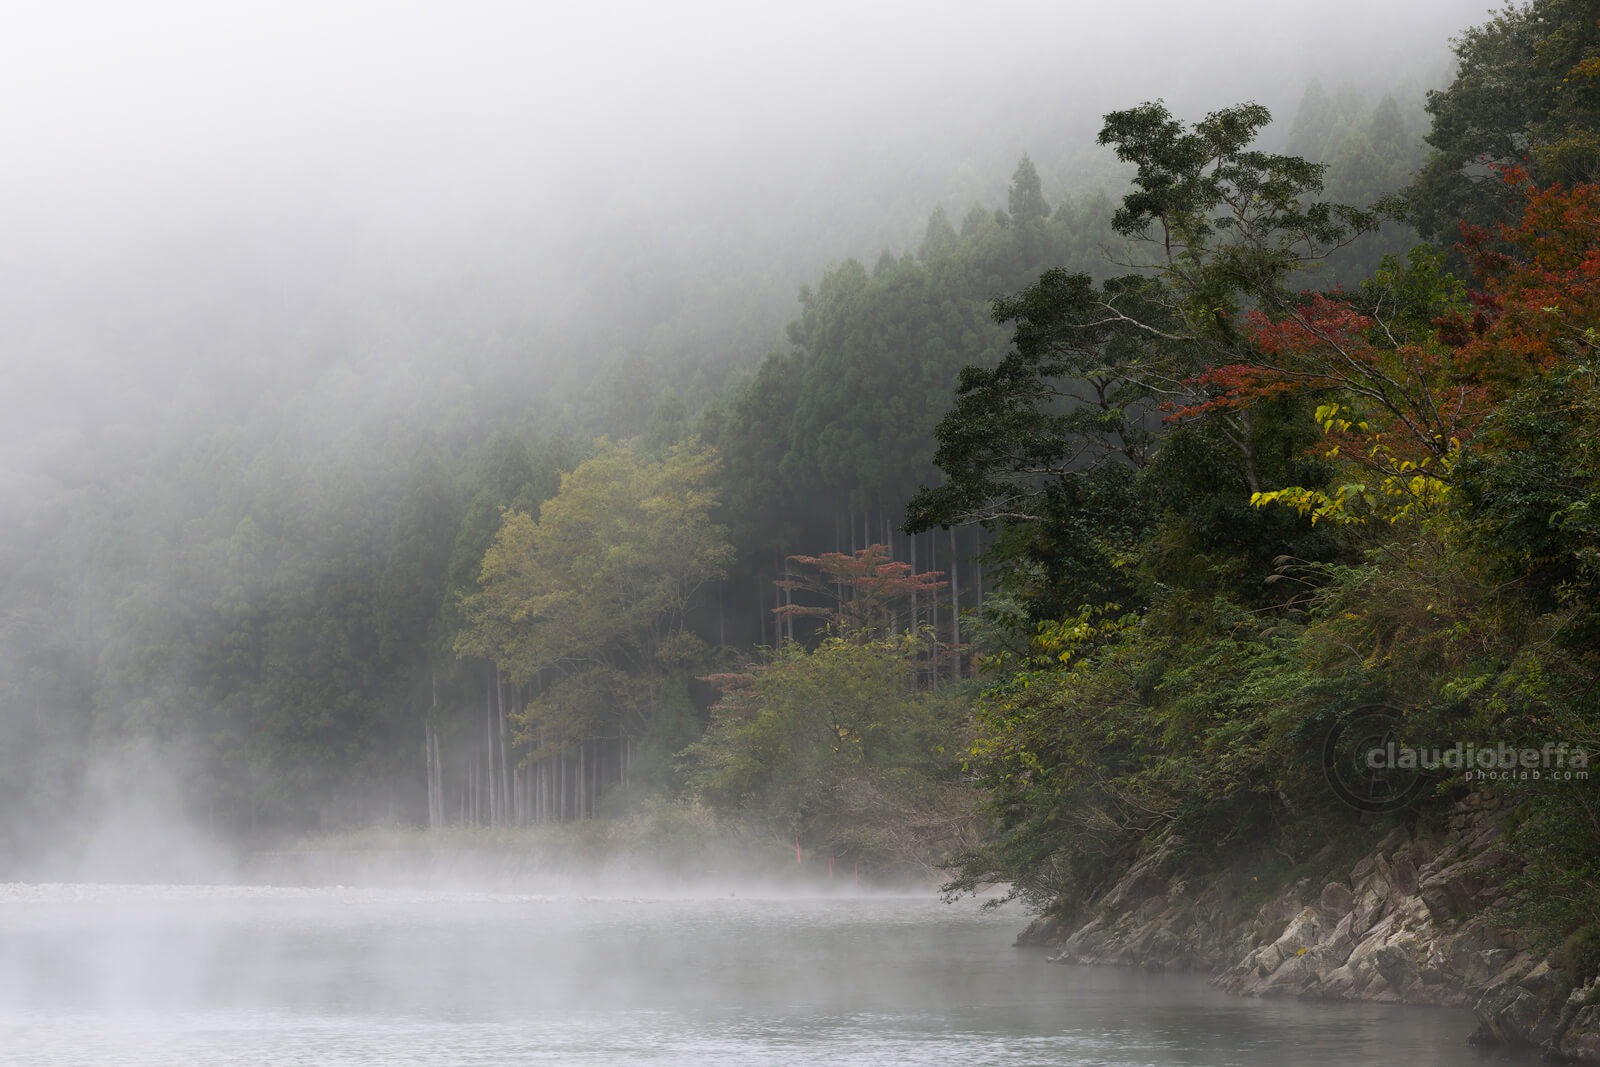 Kii peninsula, Kawayu, Kumano, Japan, River, Fog, Mist, Forest, Autumn, Nature, Travel